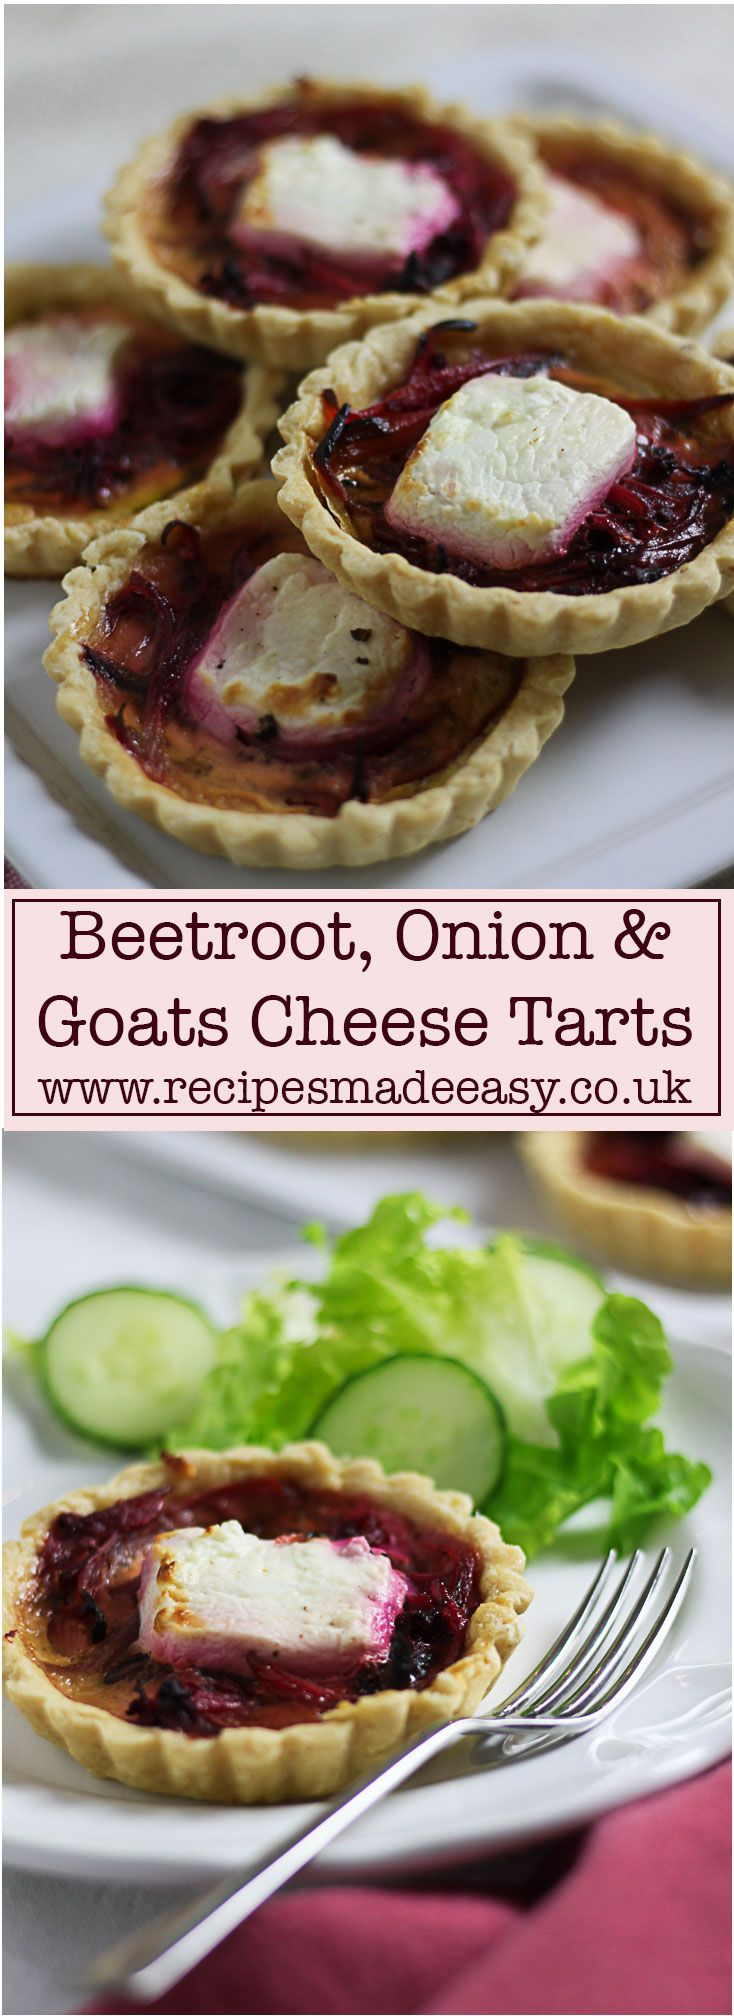 Easy to make beetroot, onion and goats cheese tarts by recipes made easy are perfect for lunch boxes, picnics, buffet table or as a dinner party starter. via @jacdotbee